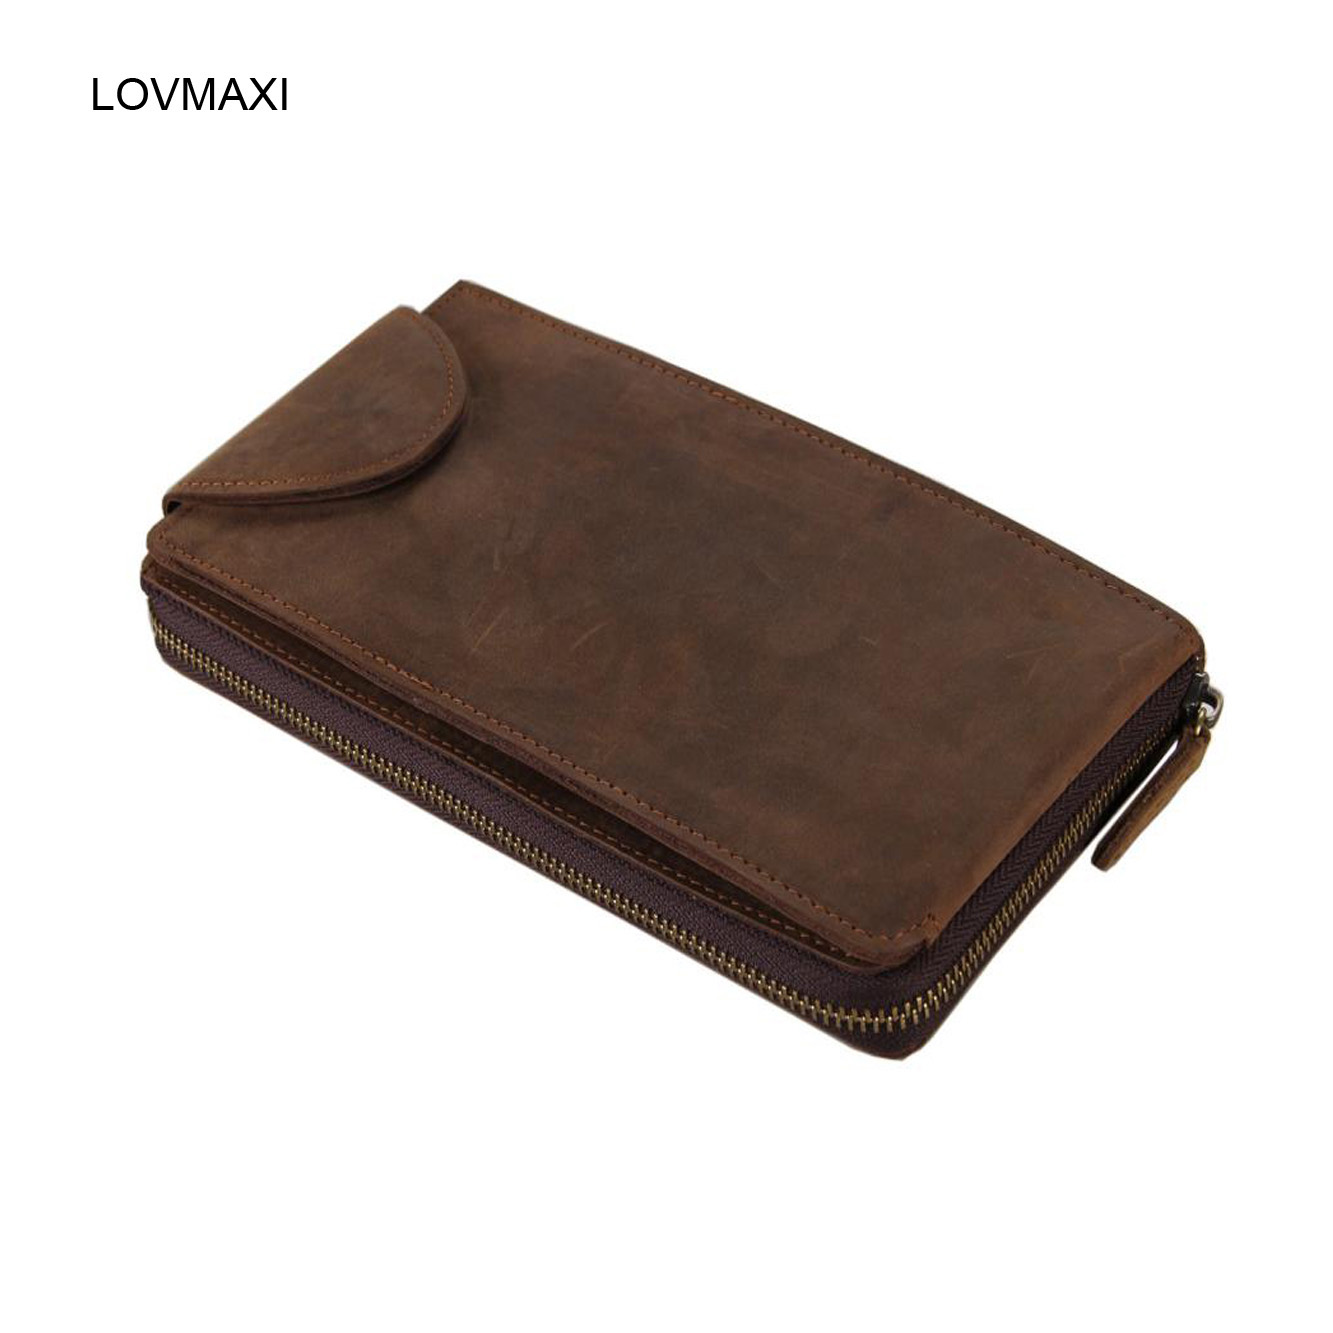 ФОТО Men's genuine leather wallets male clutch bag male crazy horse leather clutch bags Men business money clip purse